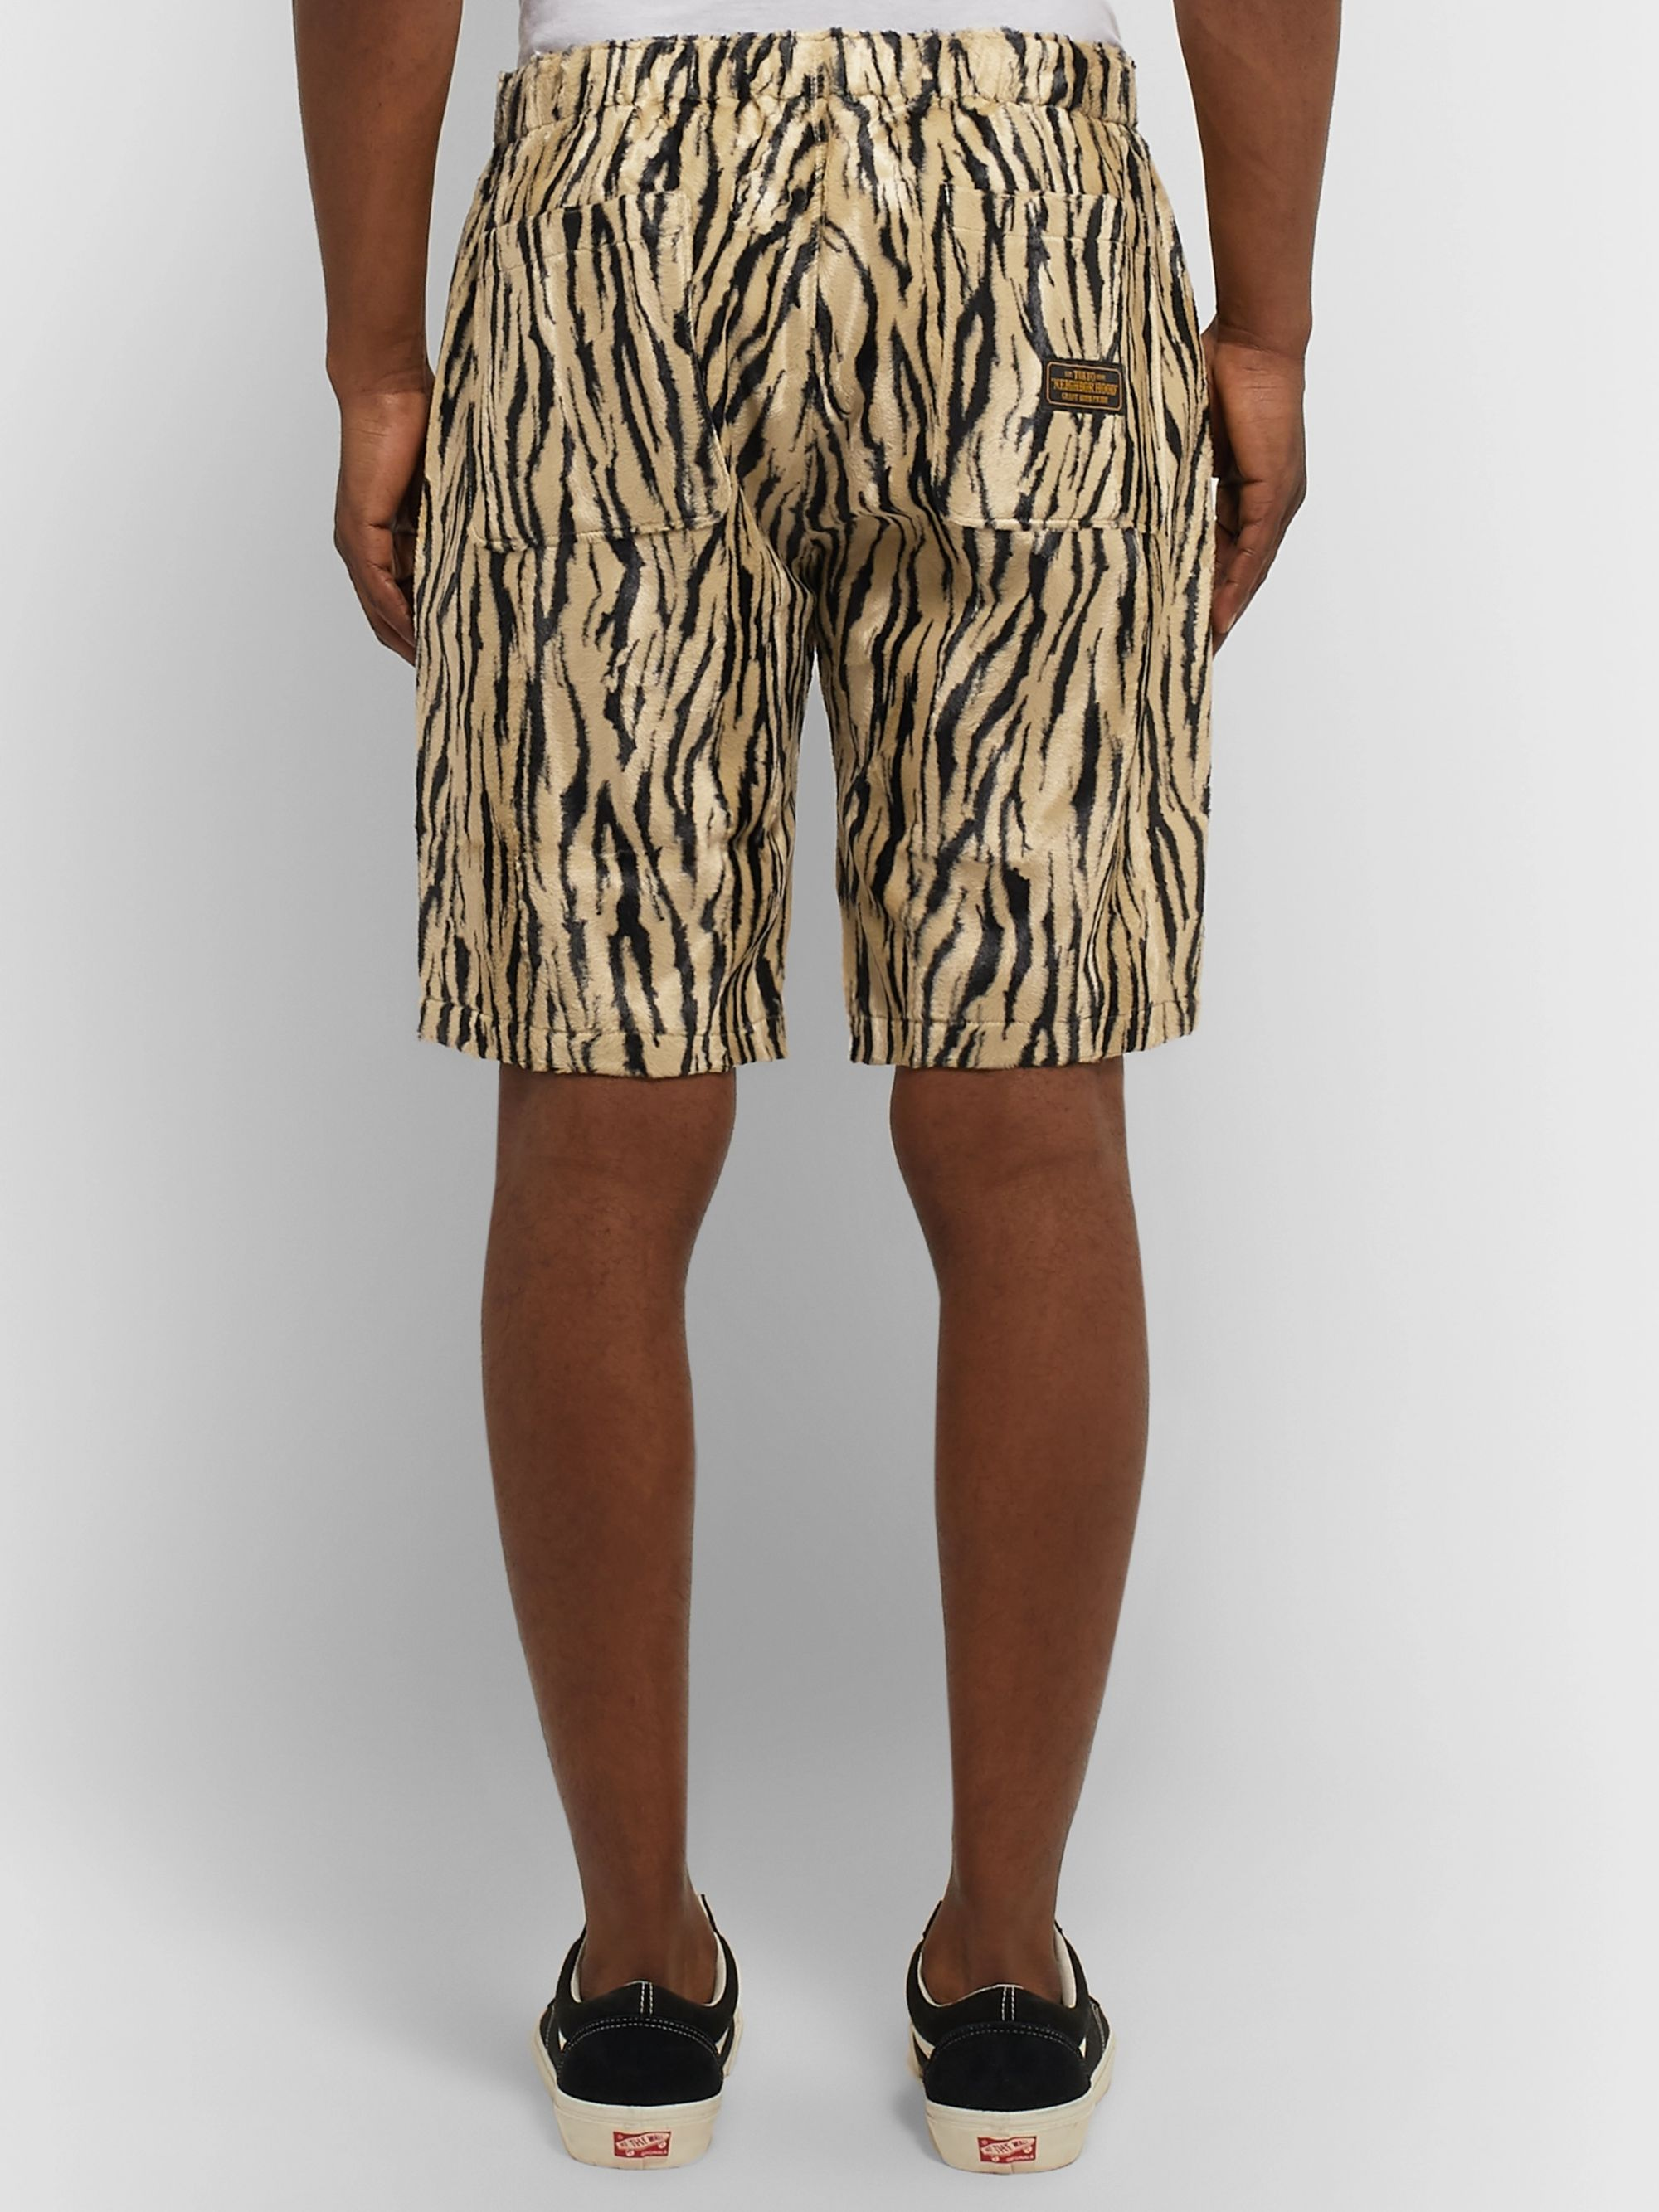 Neighborhood Zebra-Print Faux Fur Shorts